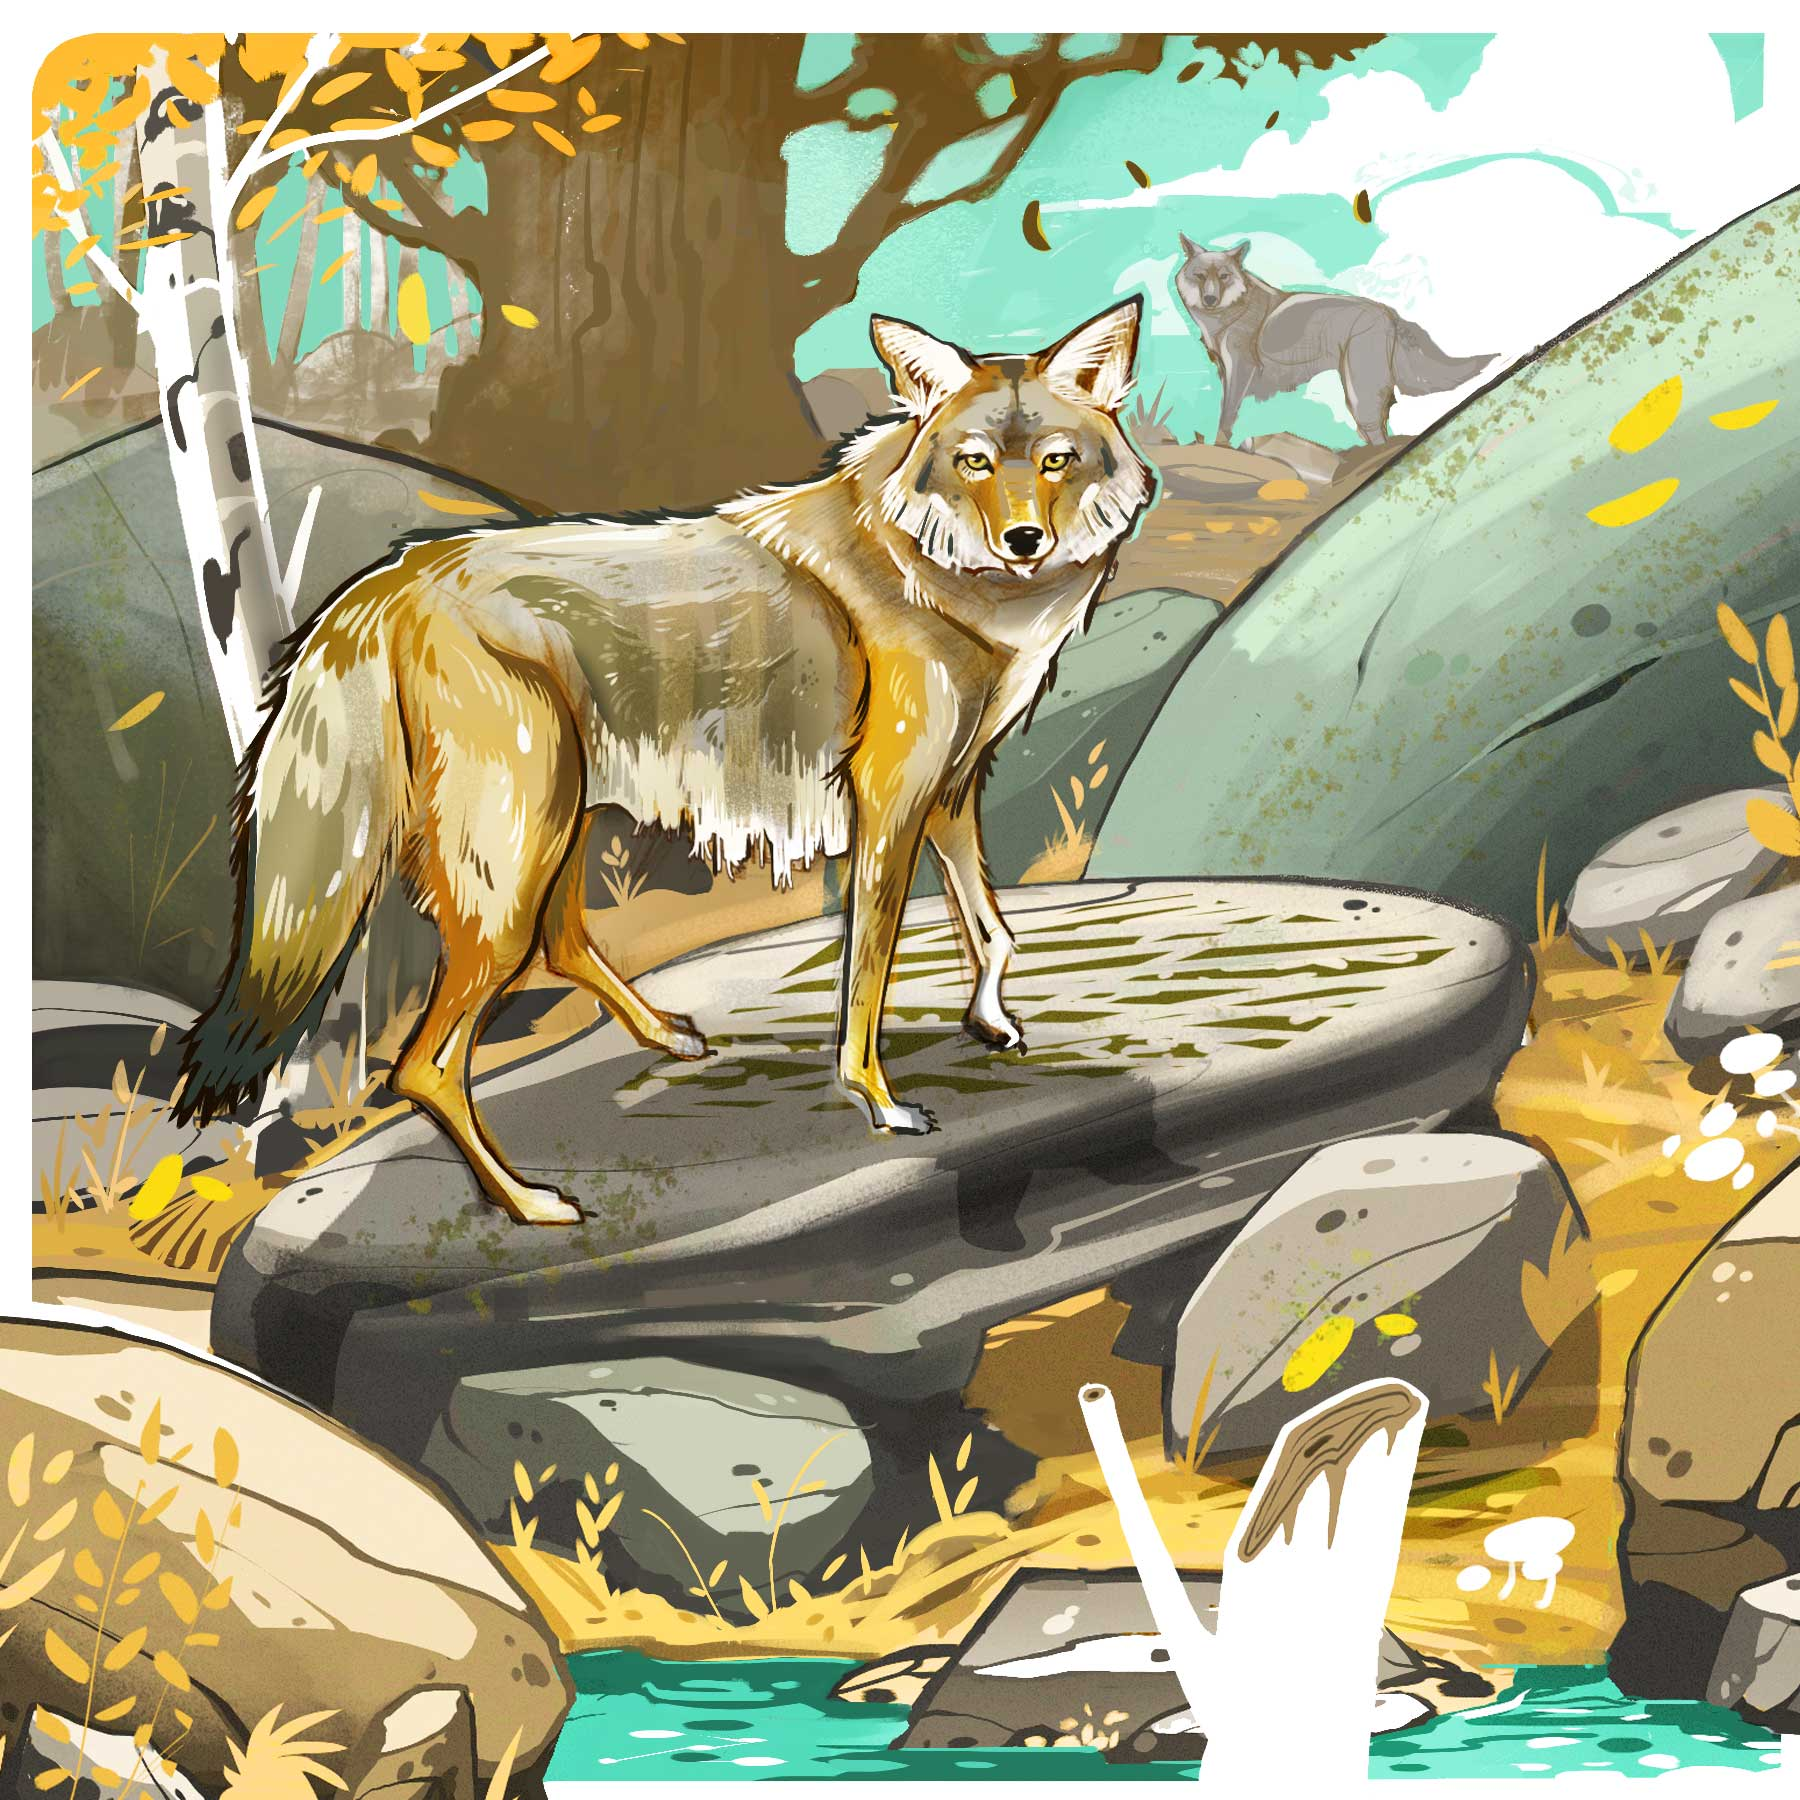 Coyotes. Illustration by Cory Proulx.